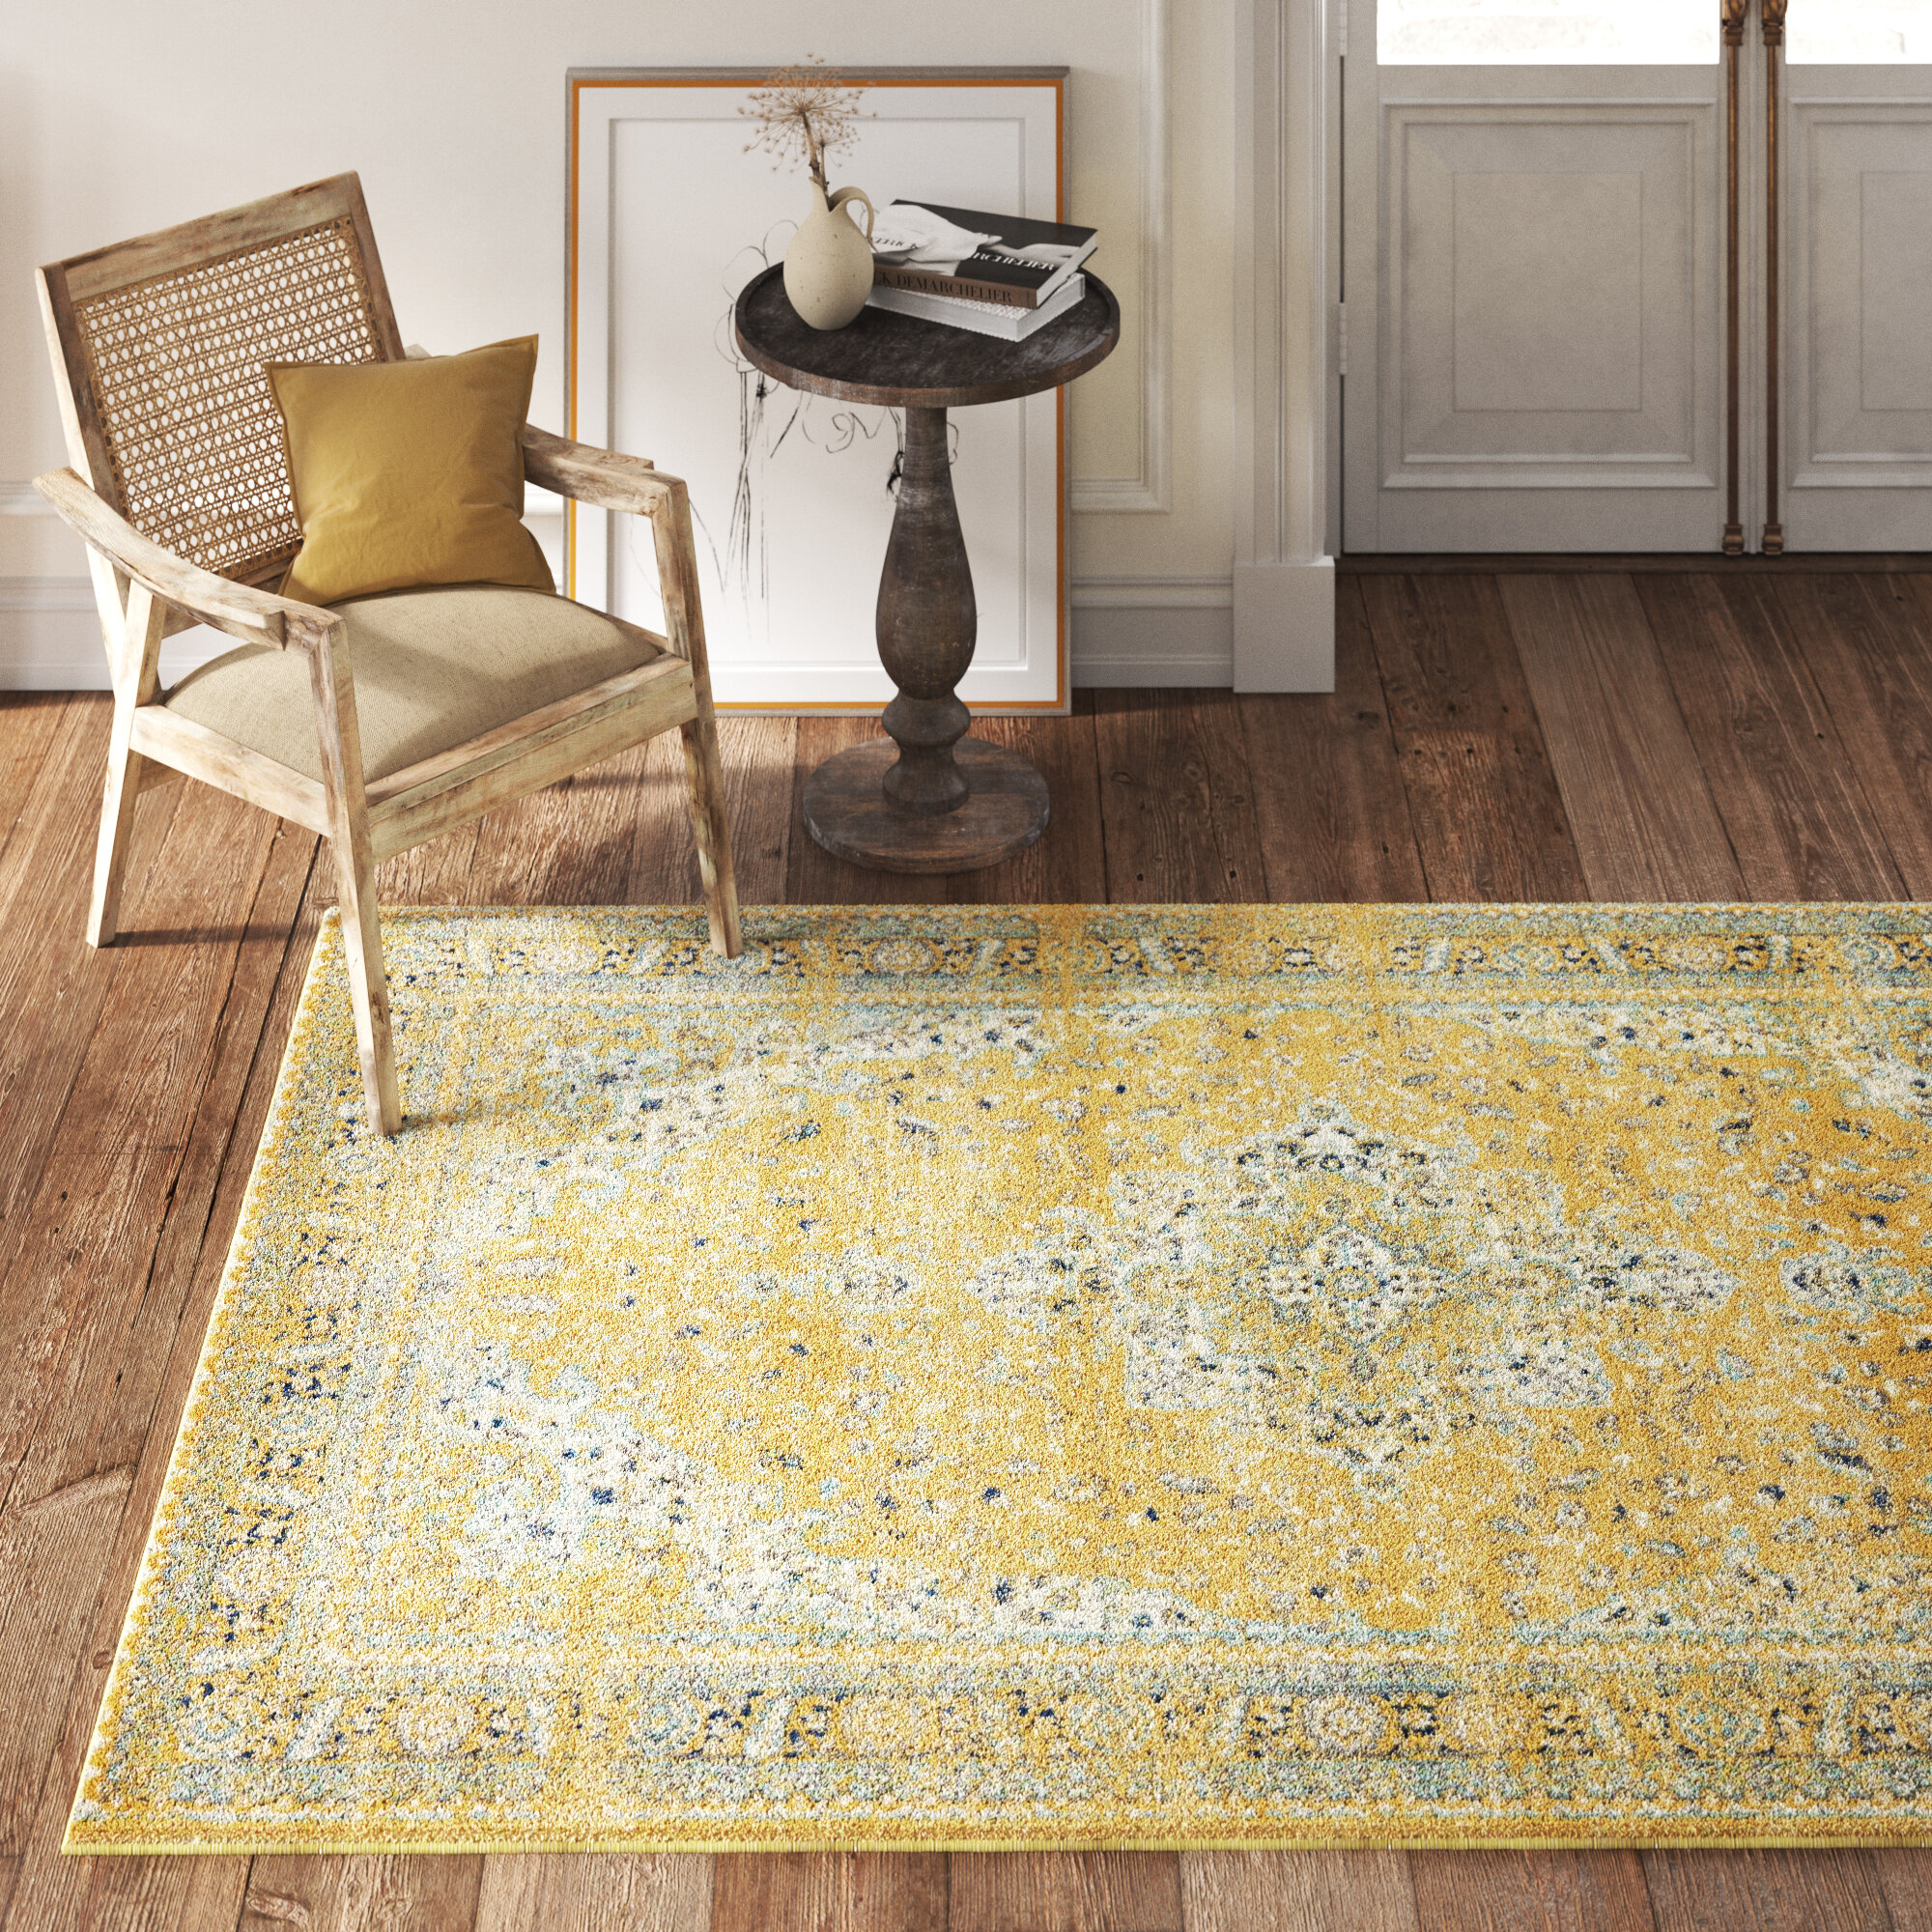 8 X 10 Yellow Gold Area Rugs You Ll Love In 2021 Wayfair